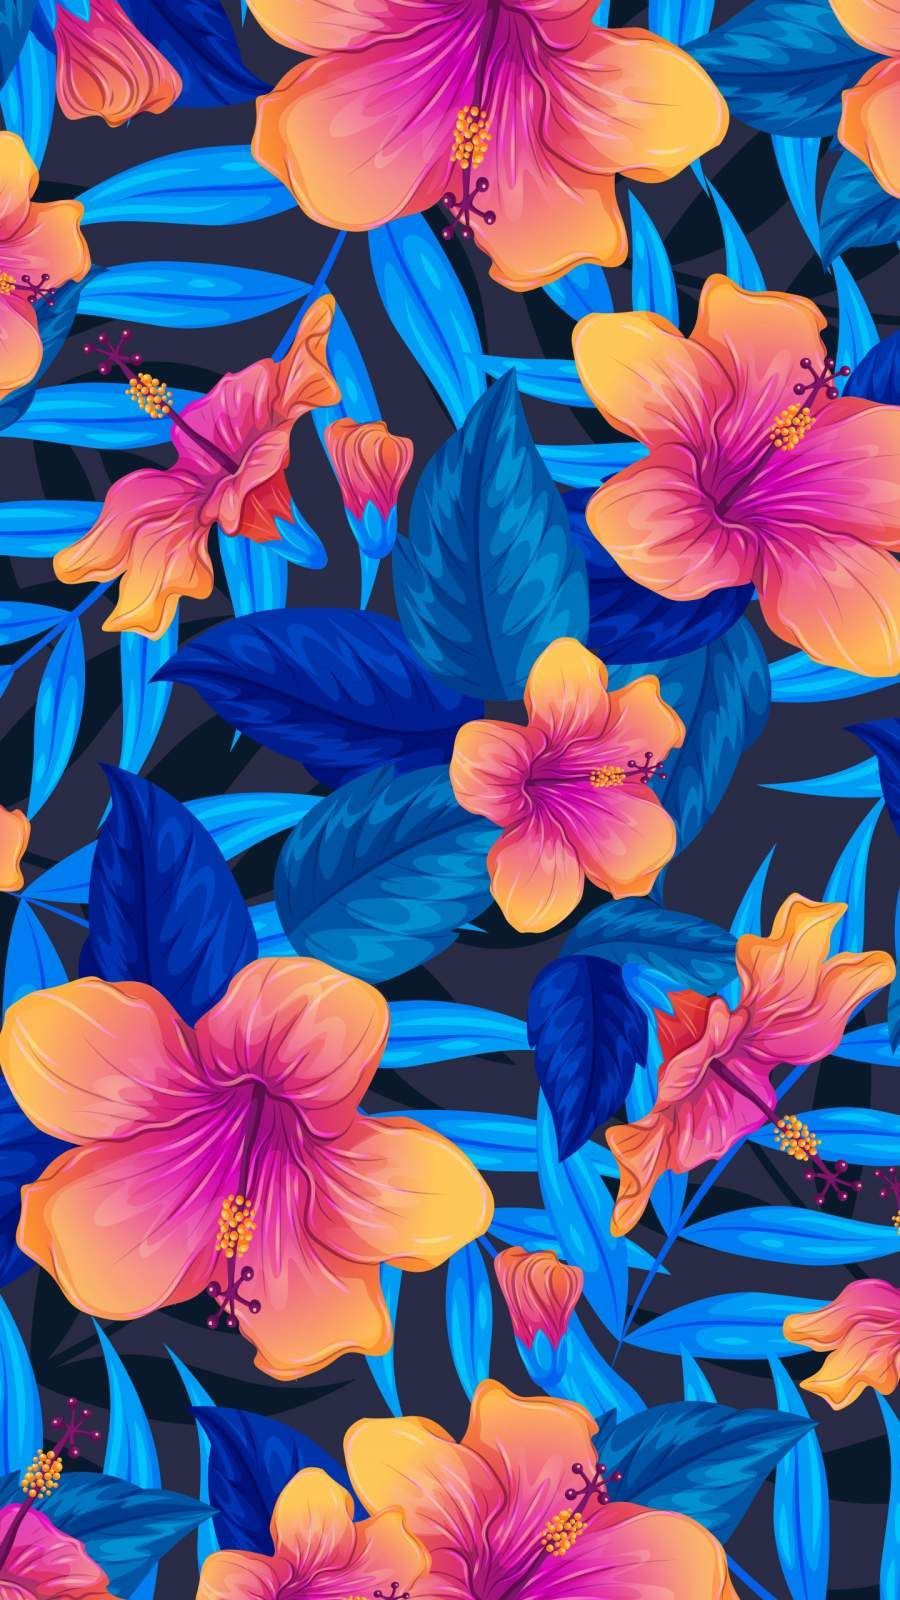 Colorful Flowers Iphone Wallpapers Top Free Colorful Flowers Iphone Backgrounds Wallpaperaccess